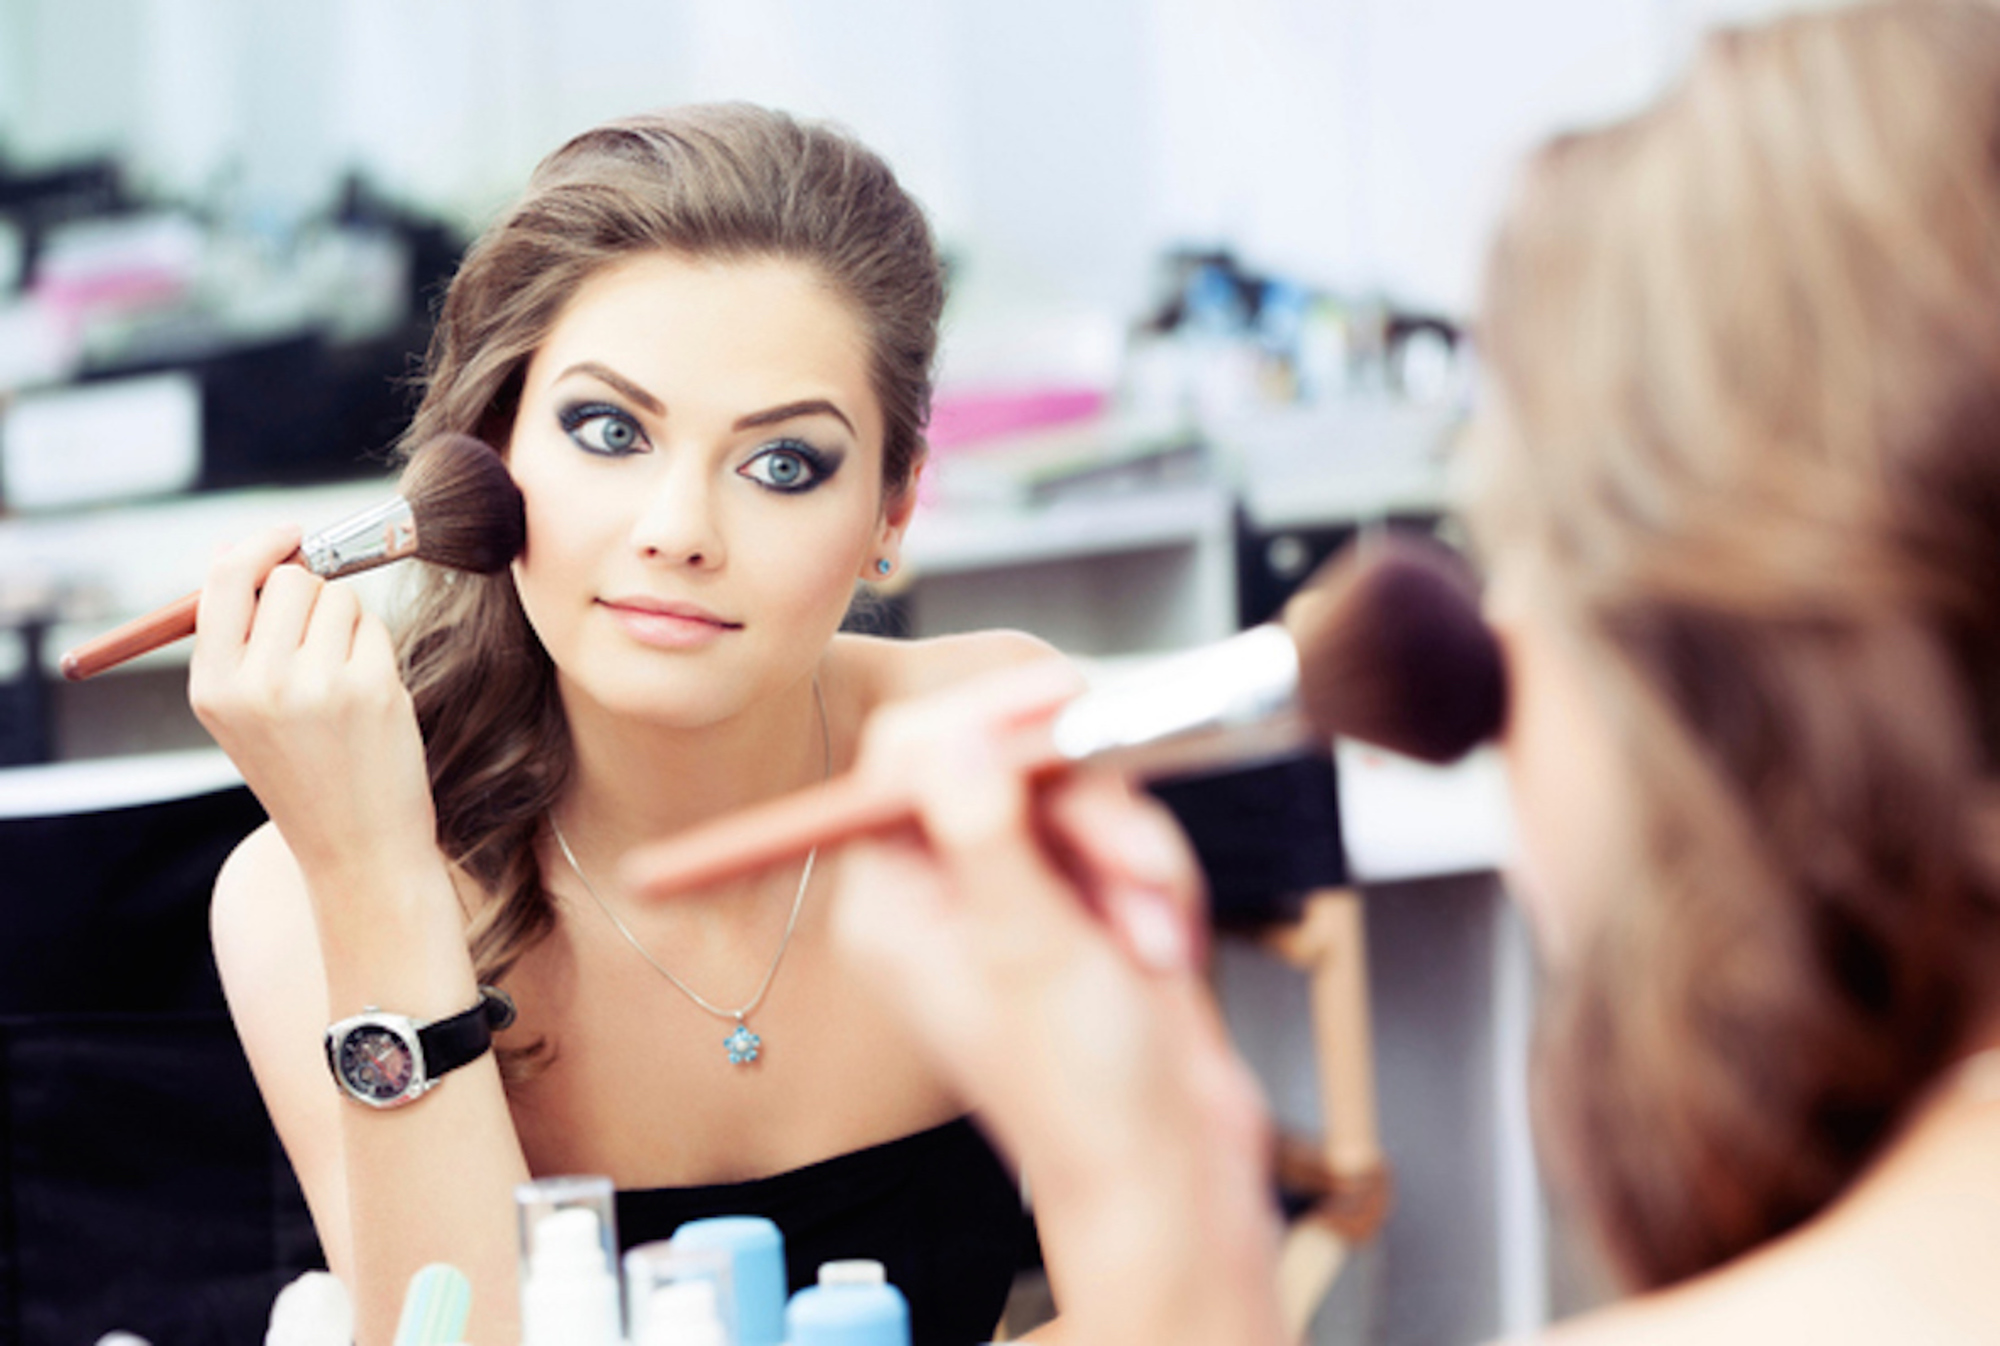 5 Things You Should Never Do When Doing Your Makeup